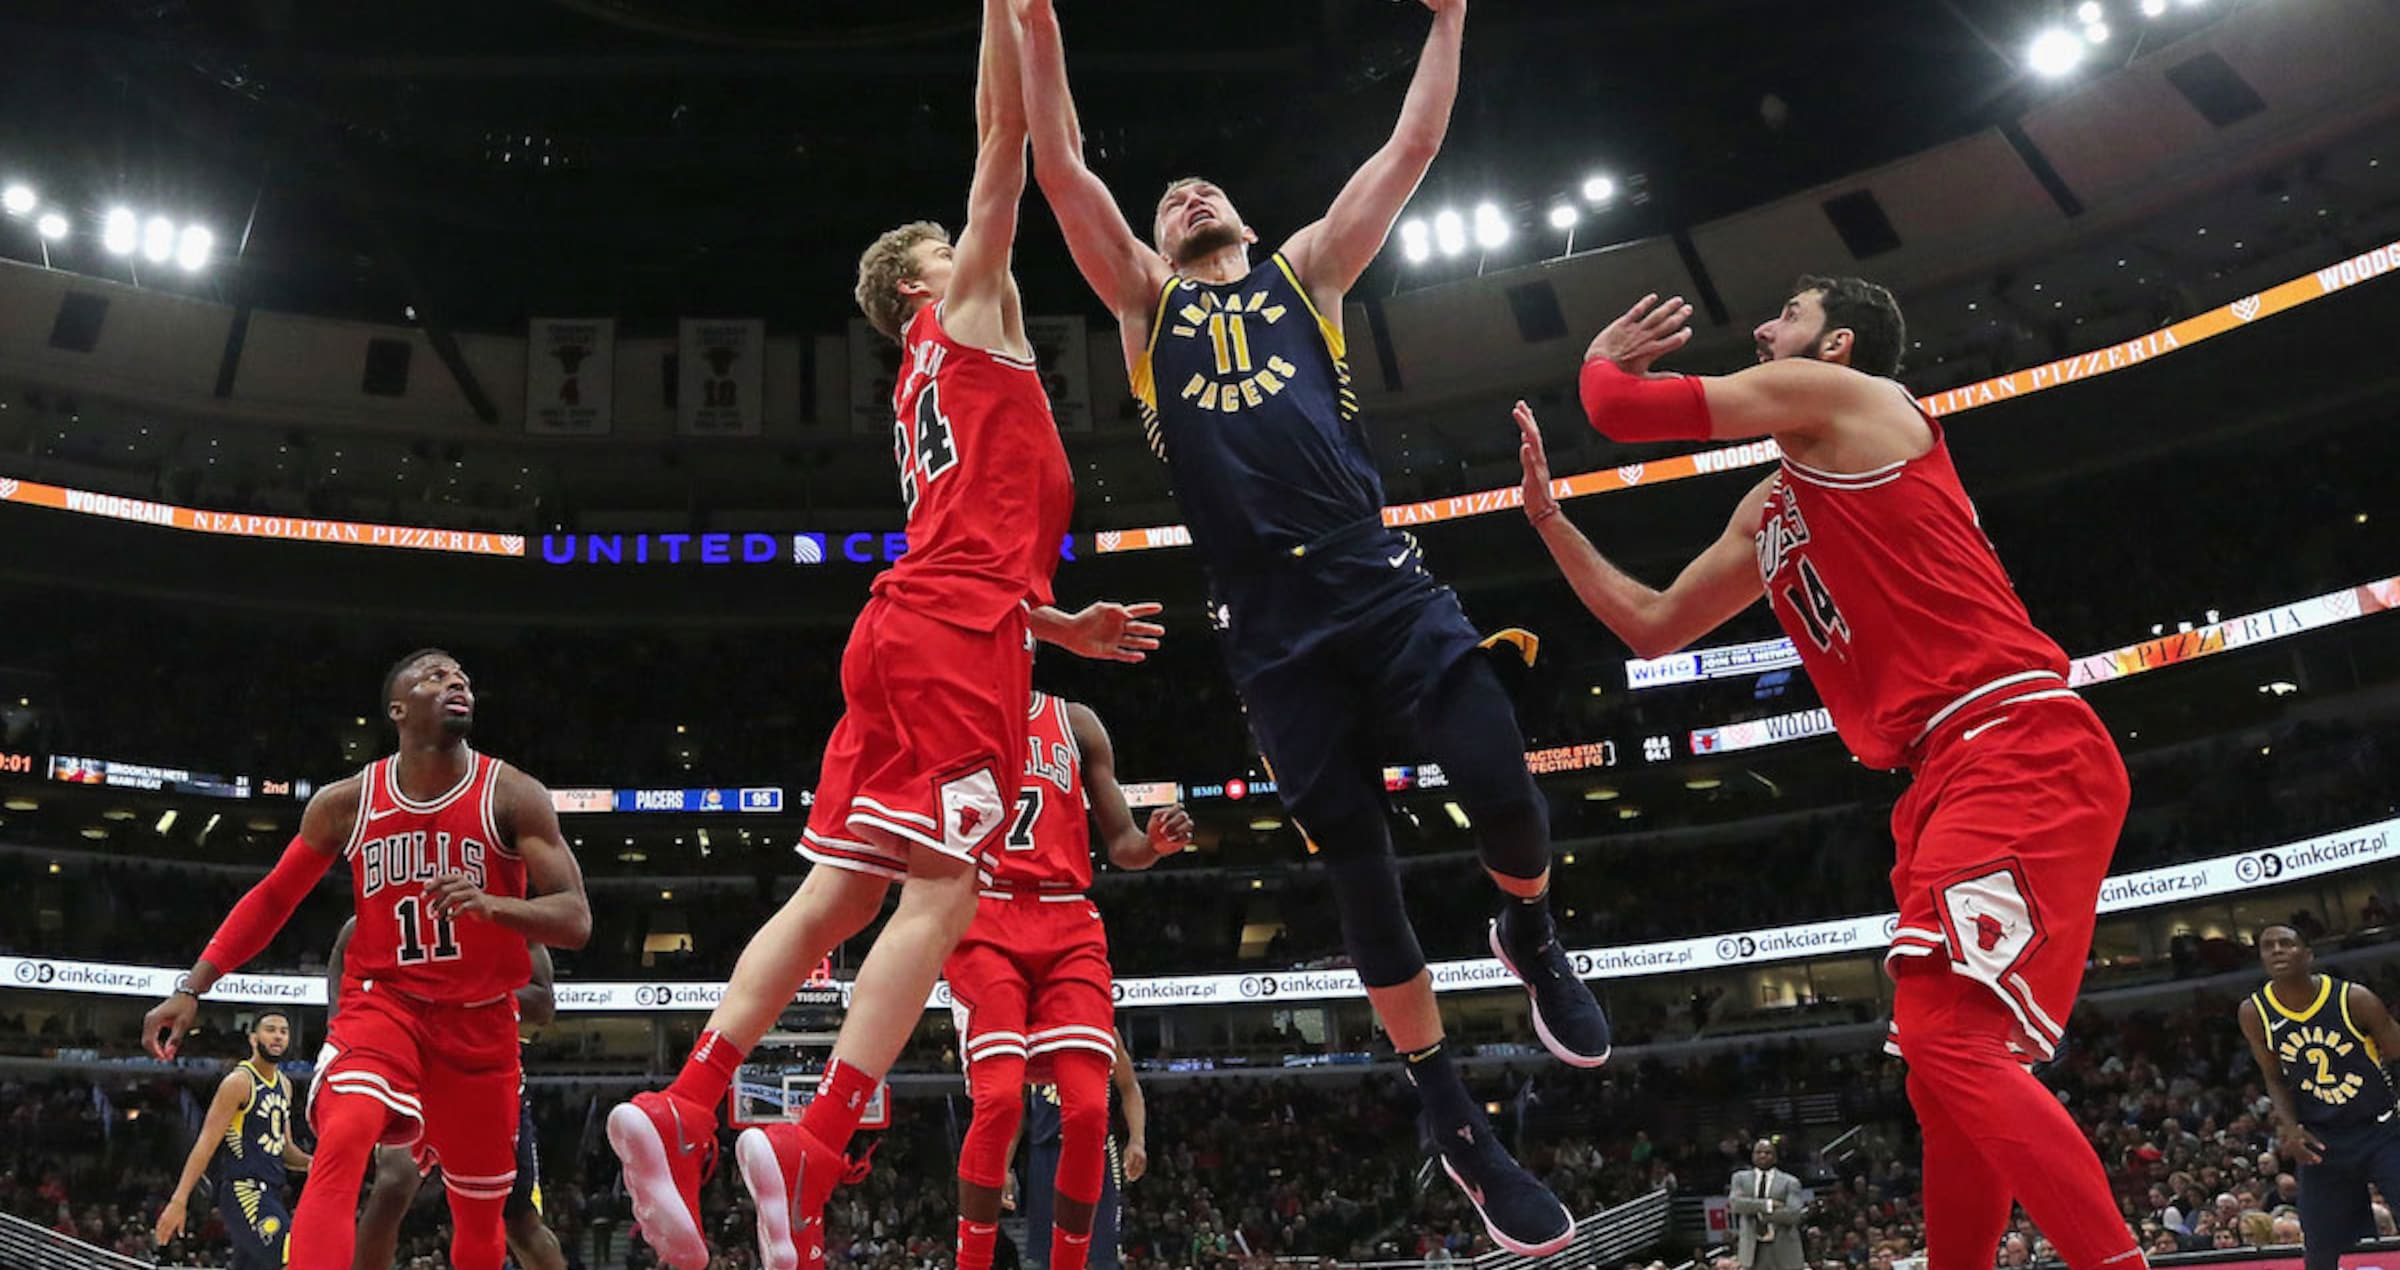 Domantas Sabonis #11 of the Indiana Pacers puts up a shot between Lauri Markkanen #24 and Nikola Mirotic #44 of the Chicago Bulls.